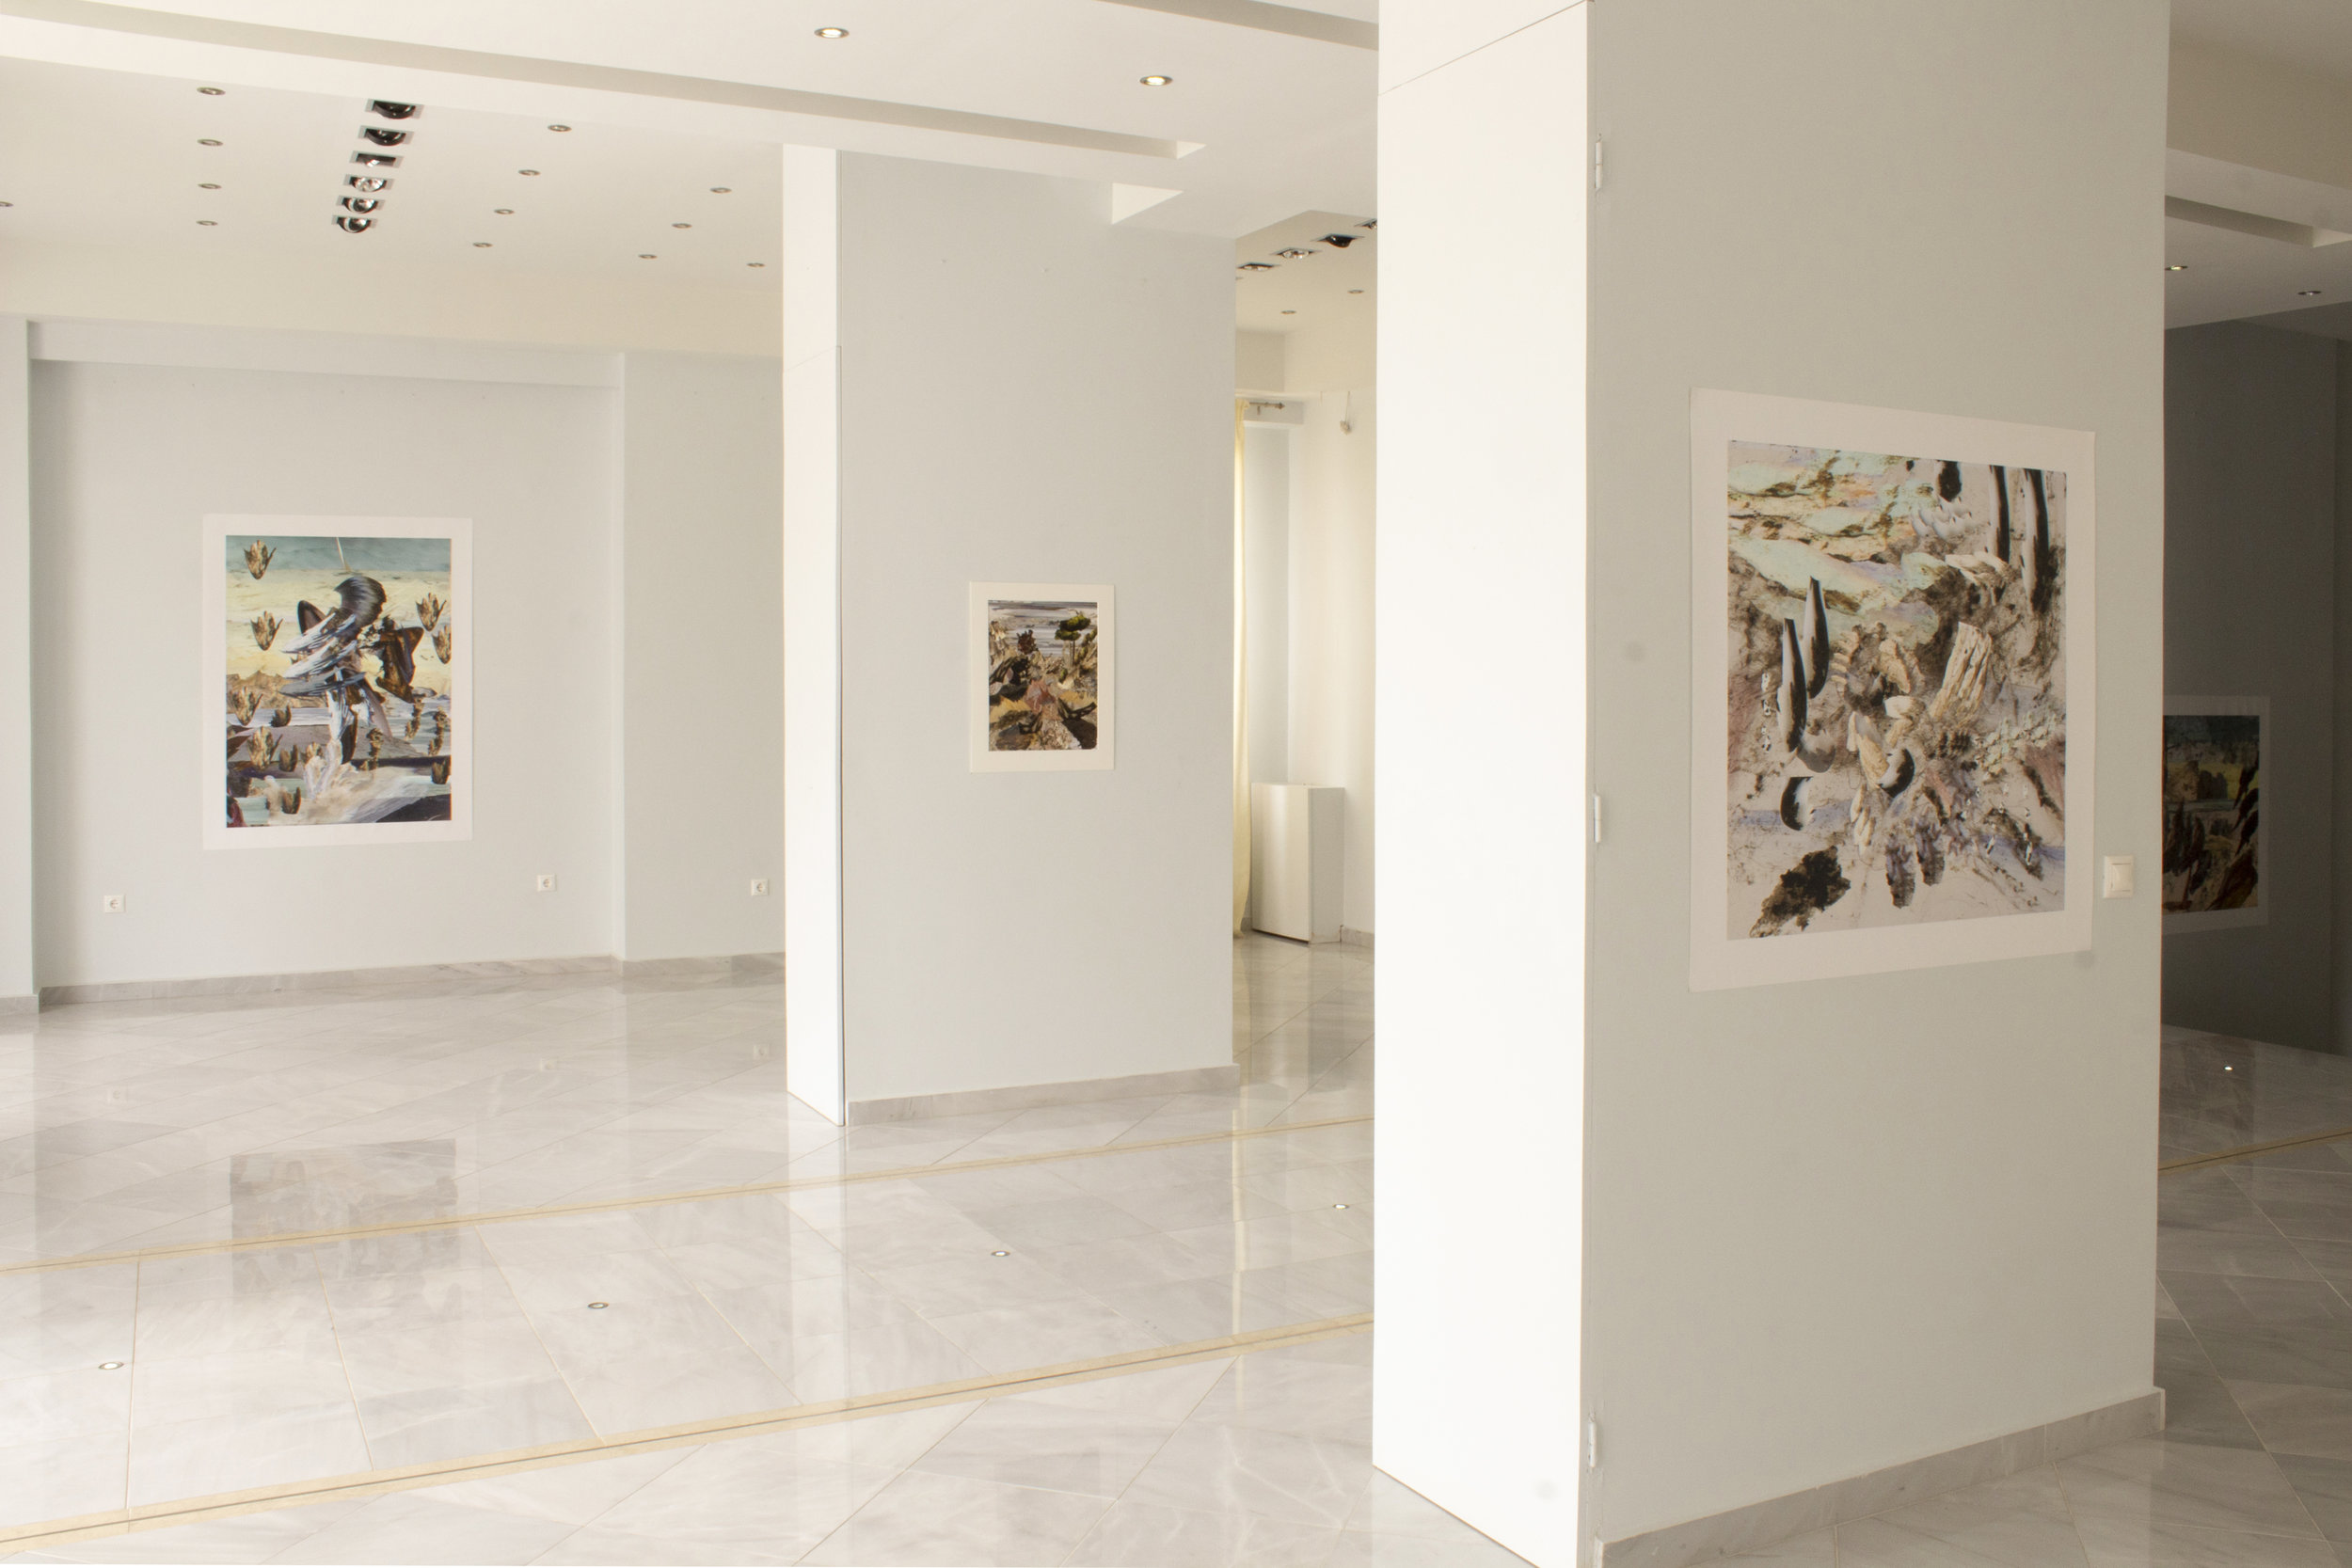 'Quarry' at Ionion Center for the Arts and Culture, Kefalonia